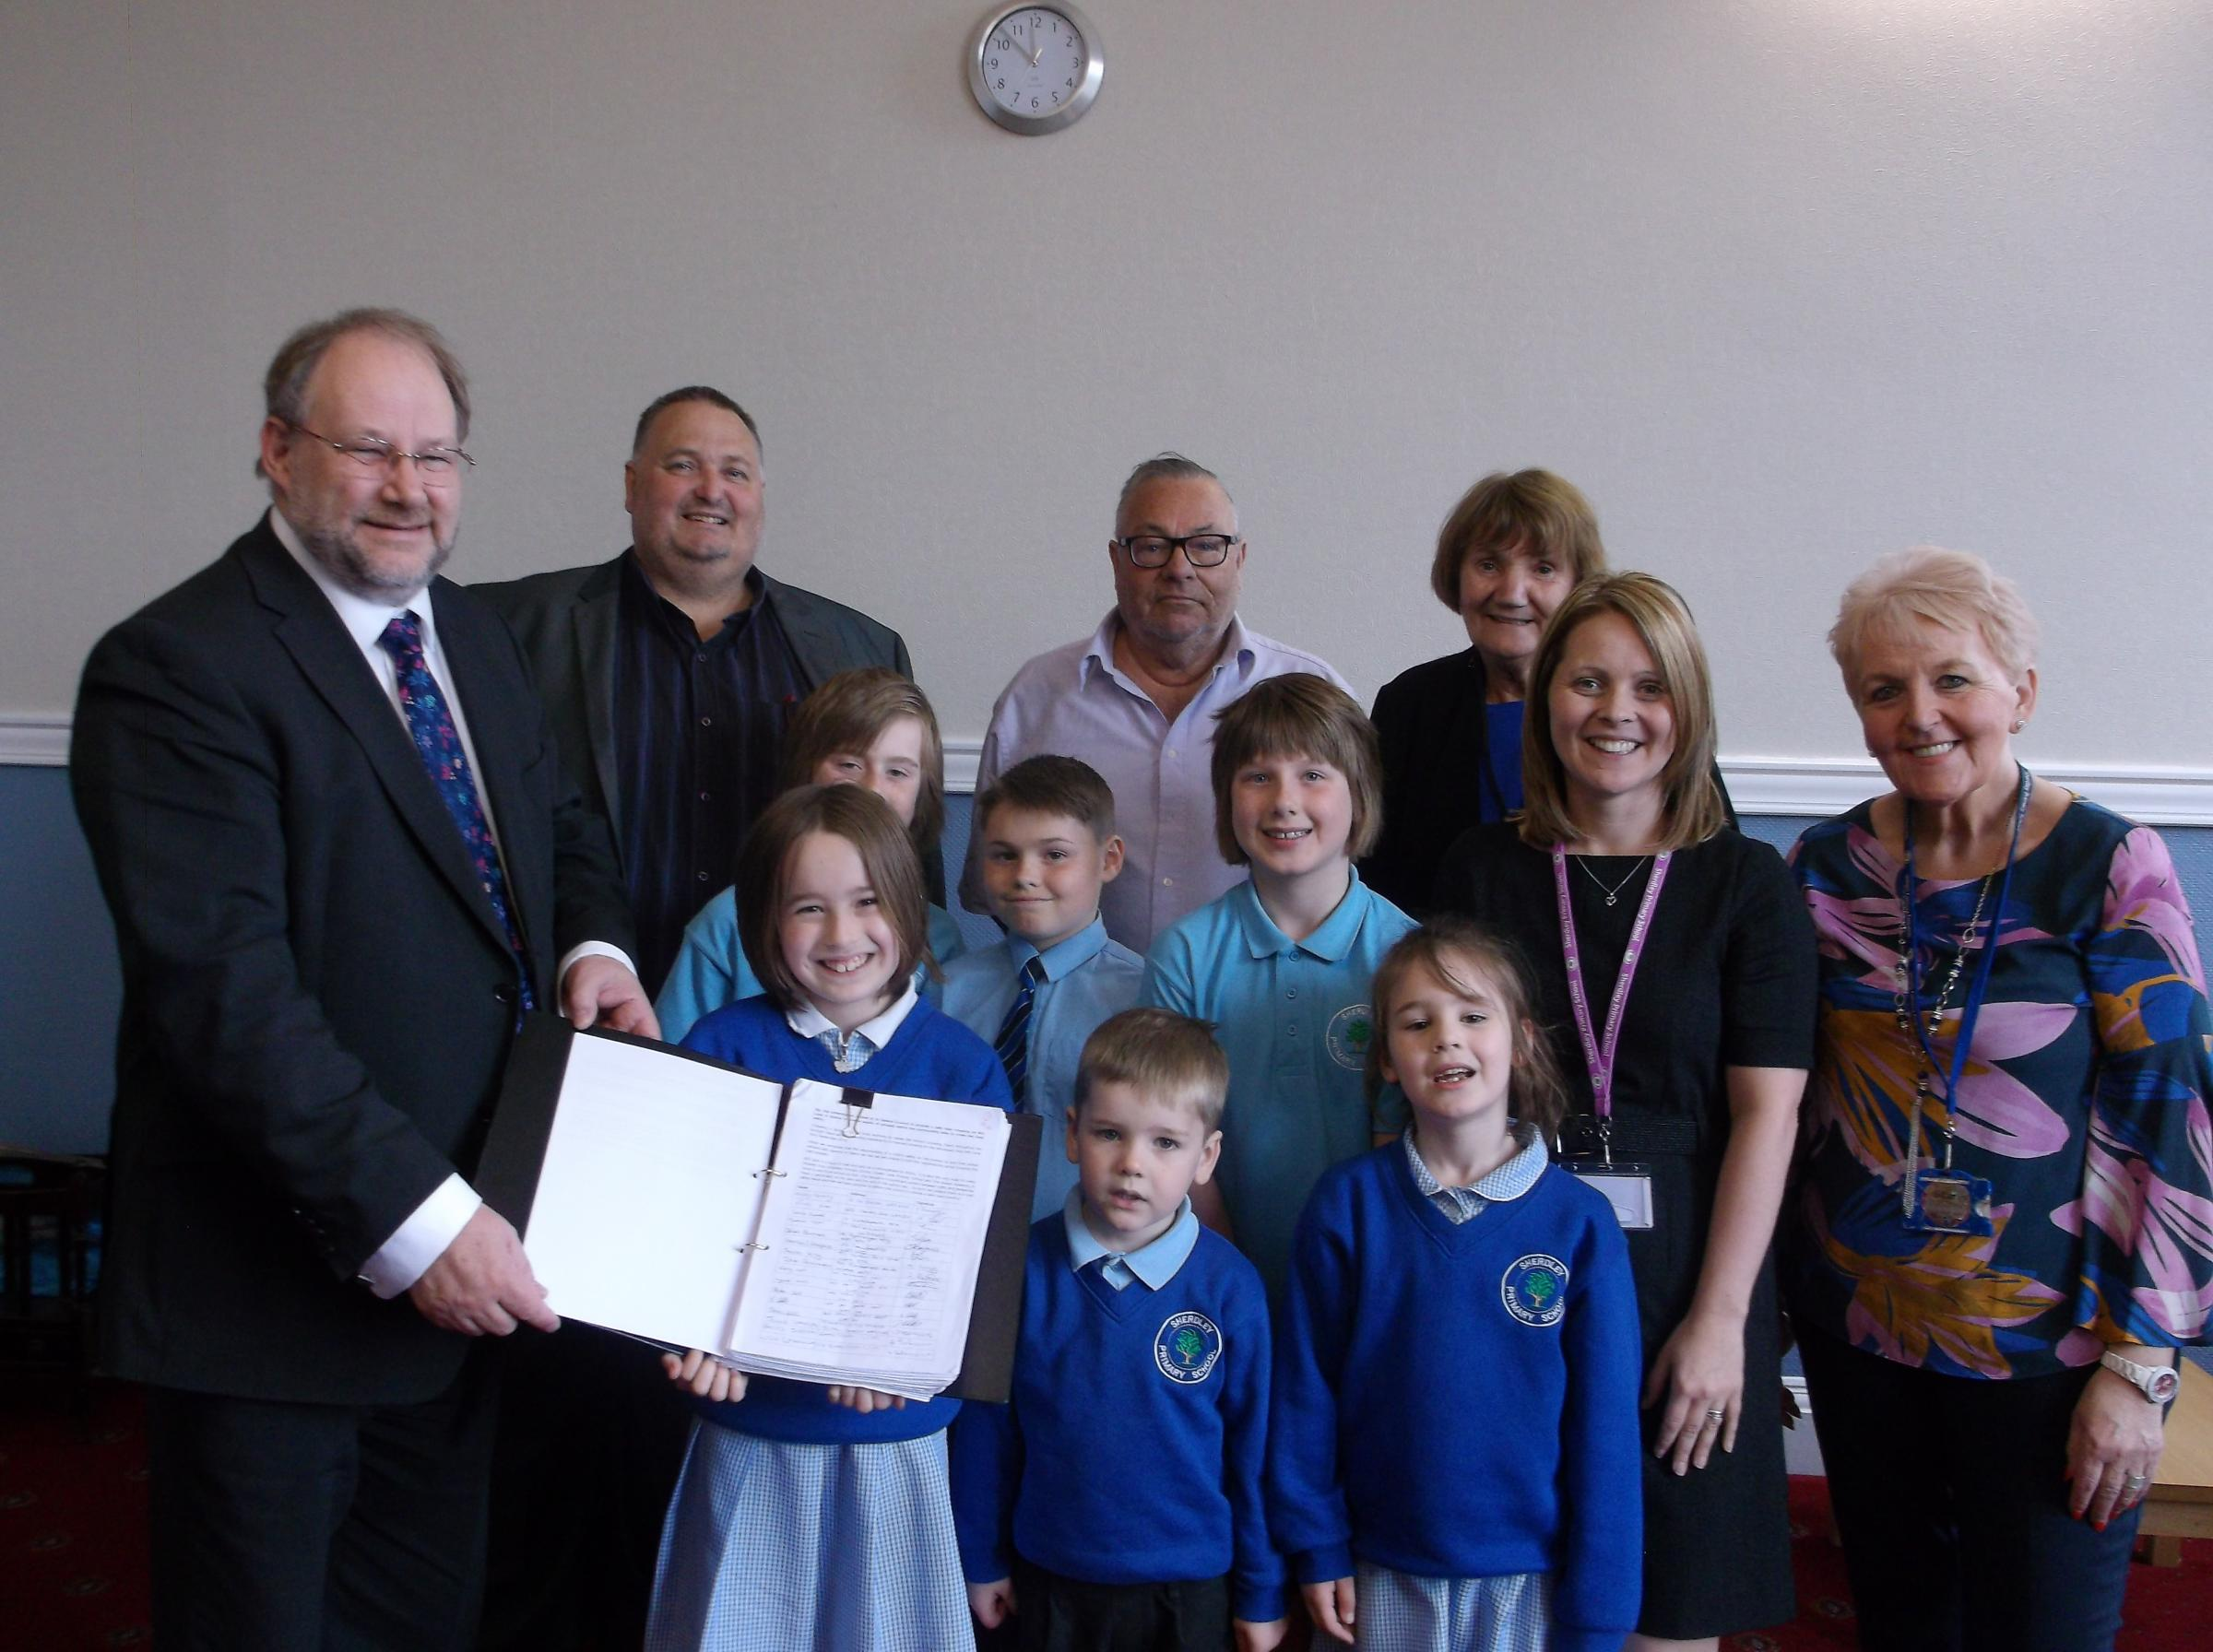 Governor Kirsty Farrelly (second right) with Ann-Marie Lakey (children & families support co-ordinator), ward councillors, leader Derek Long (left) and some of the junior road safety officers and school council representatives